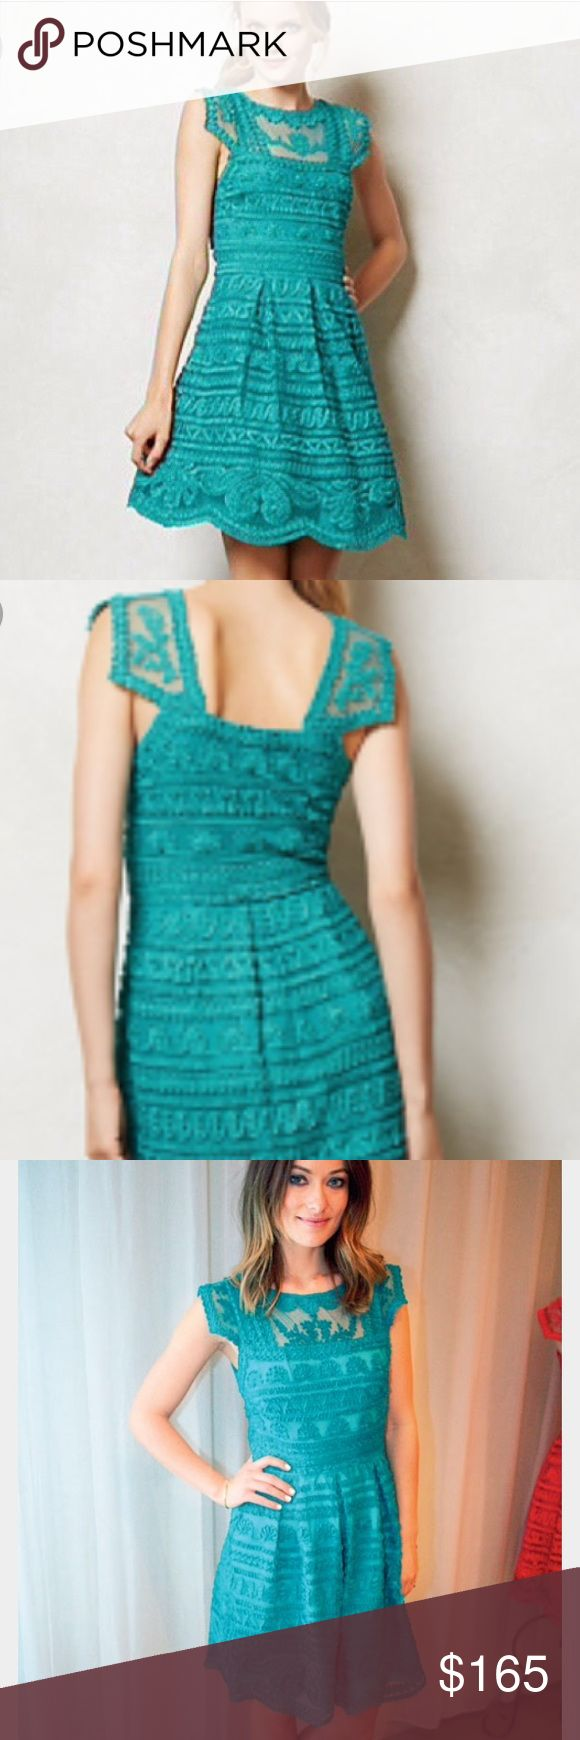 Anthroplogie by Yoana Baraschi turquoise lace dres Beautiful turquoise lace dress, sold out quick and a celebrities favorite. Worn only once. Rare find!! Anthropologie by Yoana Baraschi Dresses